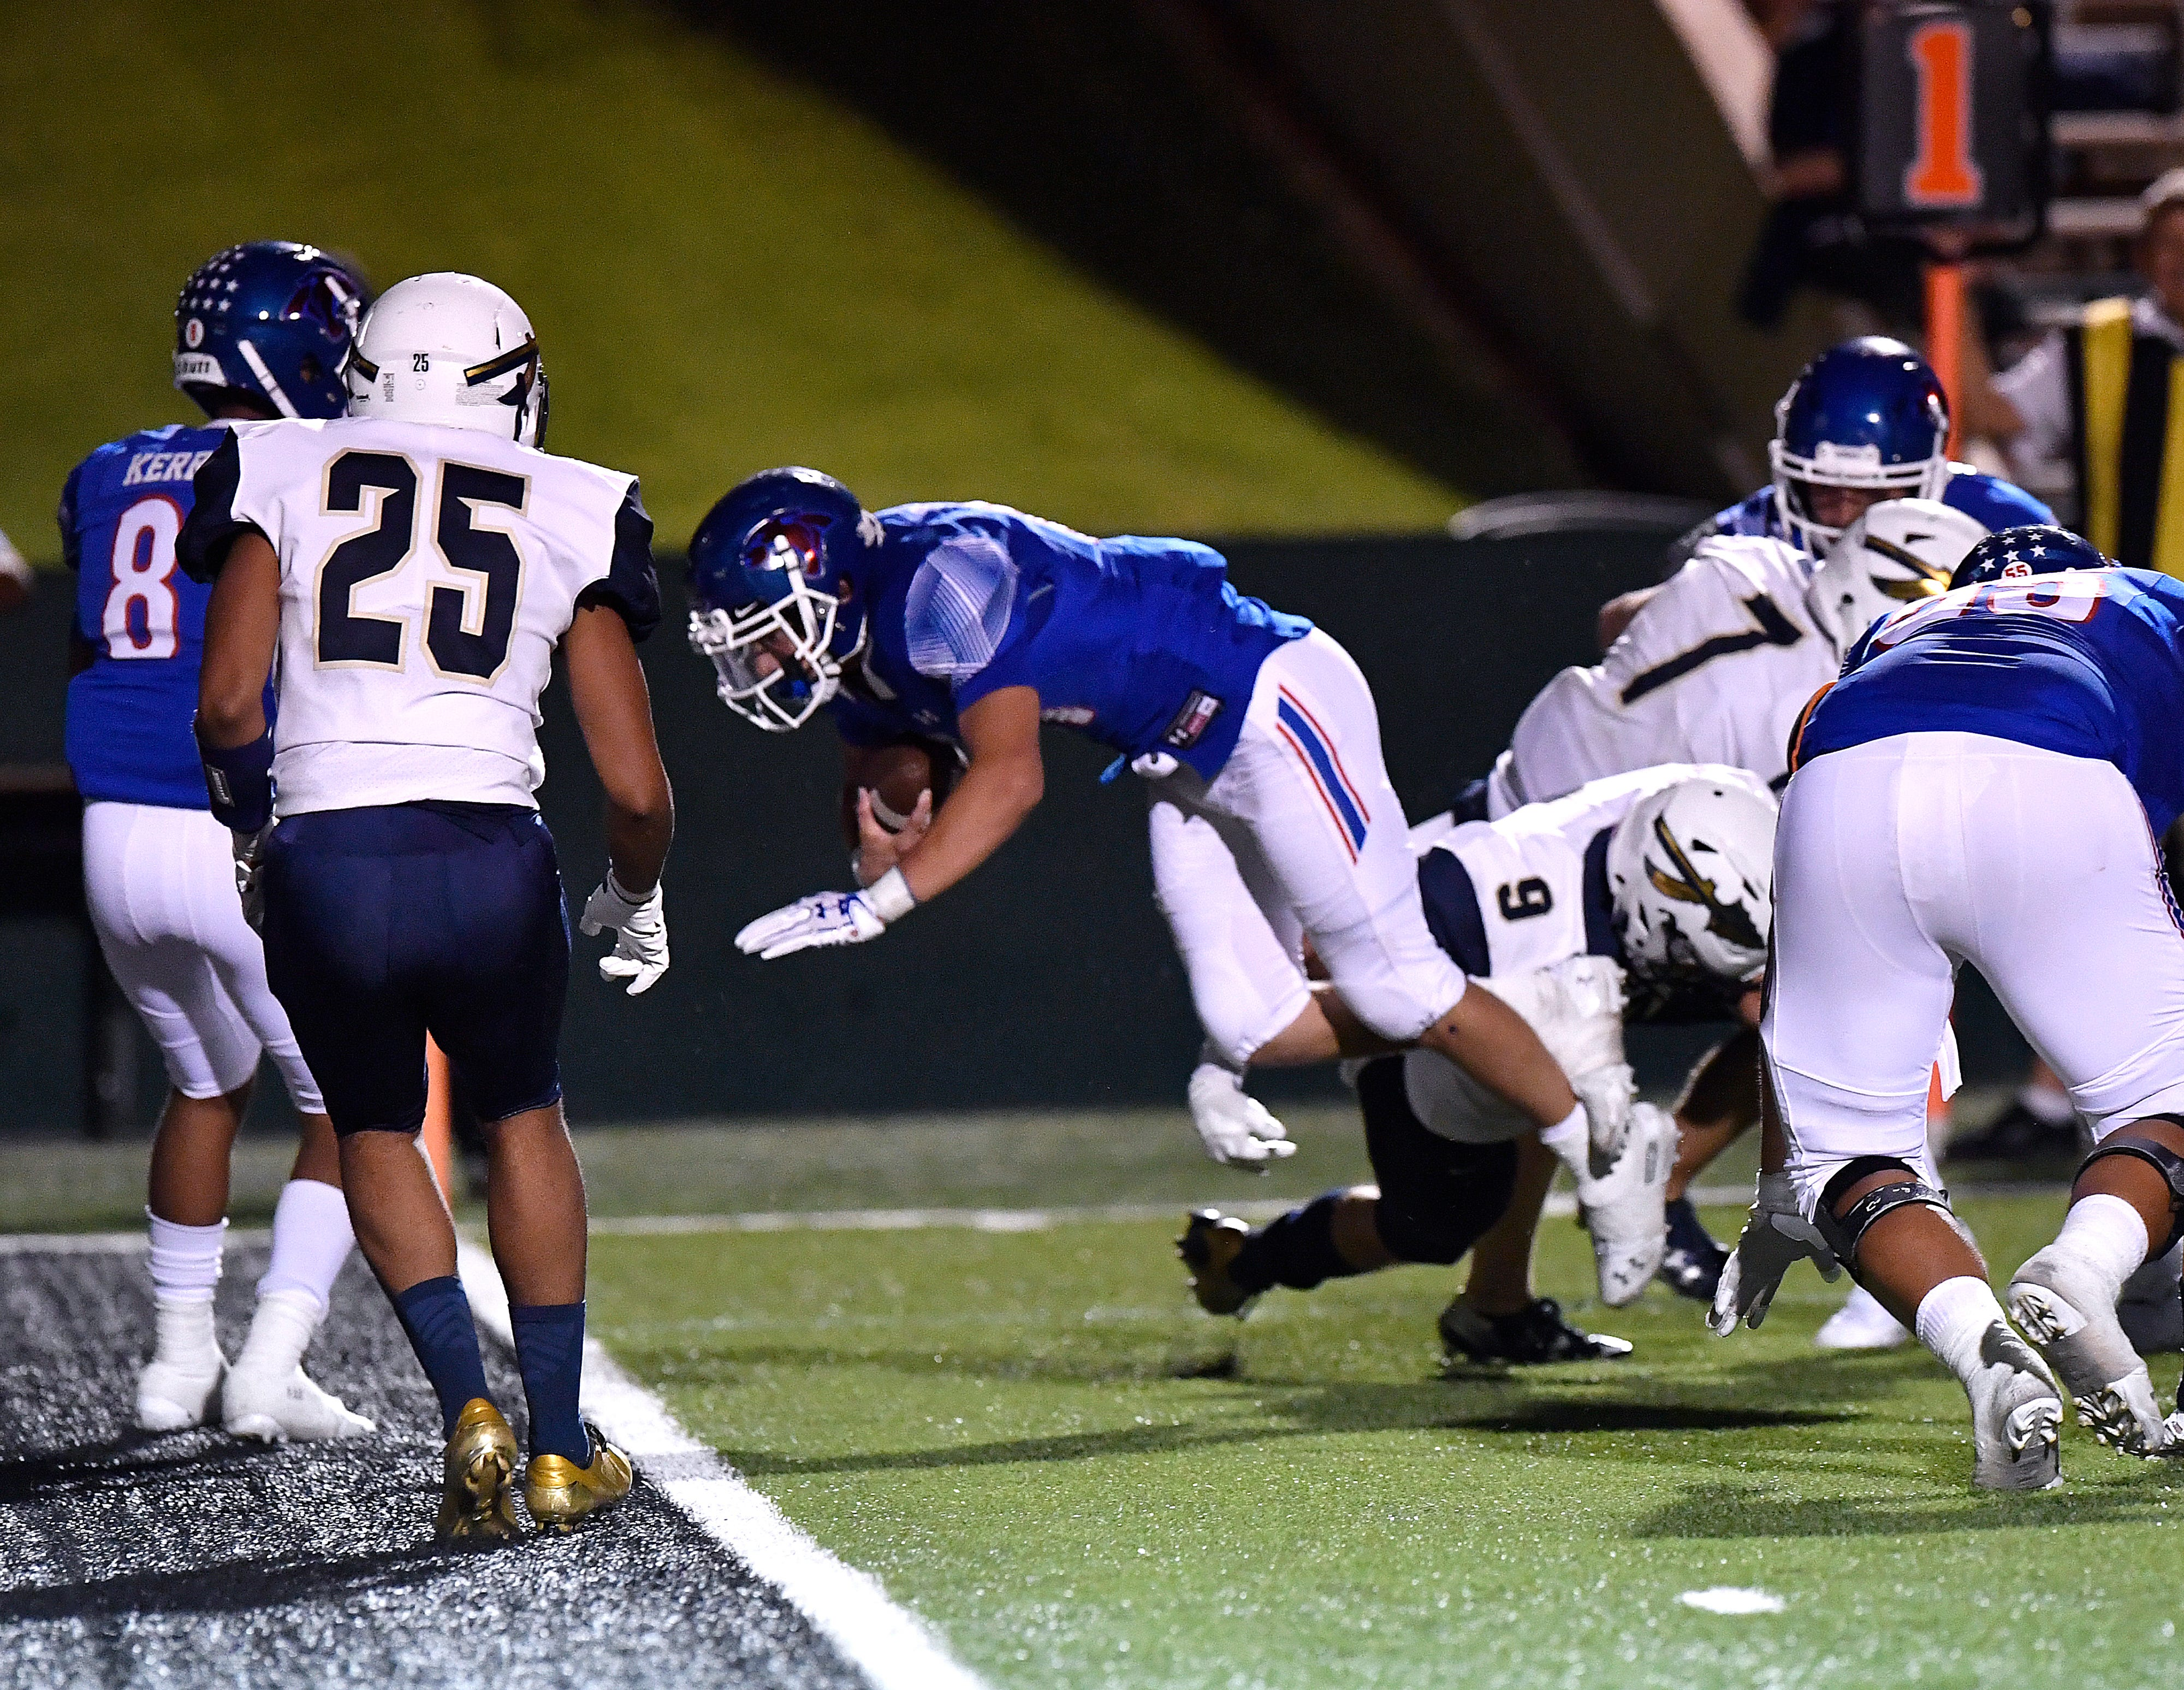 Cooper's Nic Bailey dives for a touchdown during the Cougars' game against Keller Friday August 31, 2018. Final score was 41-15, Keller.